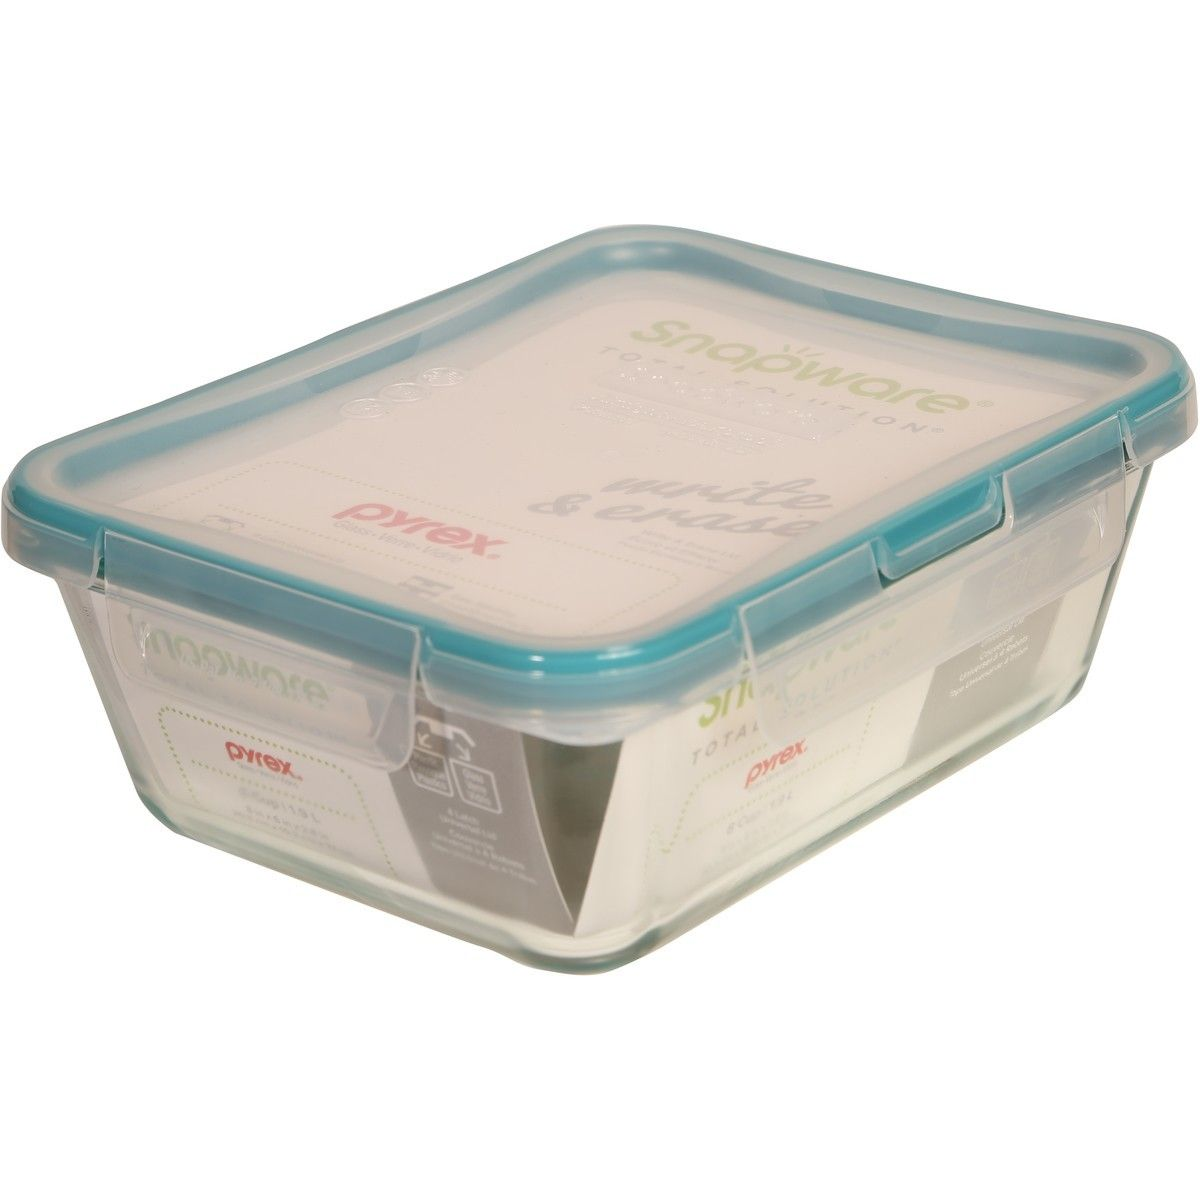 Pyrex Snapware Container 1 9l Big W Snapware Food Storage Containers Pyrex